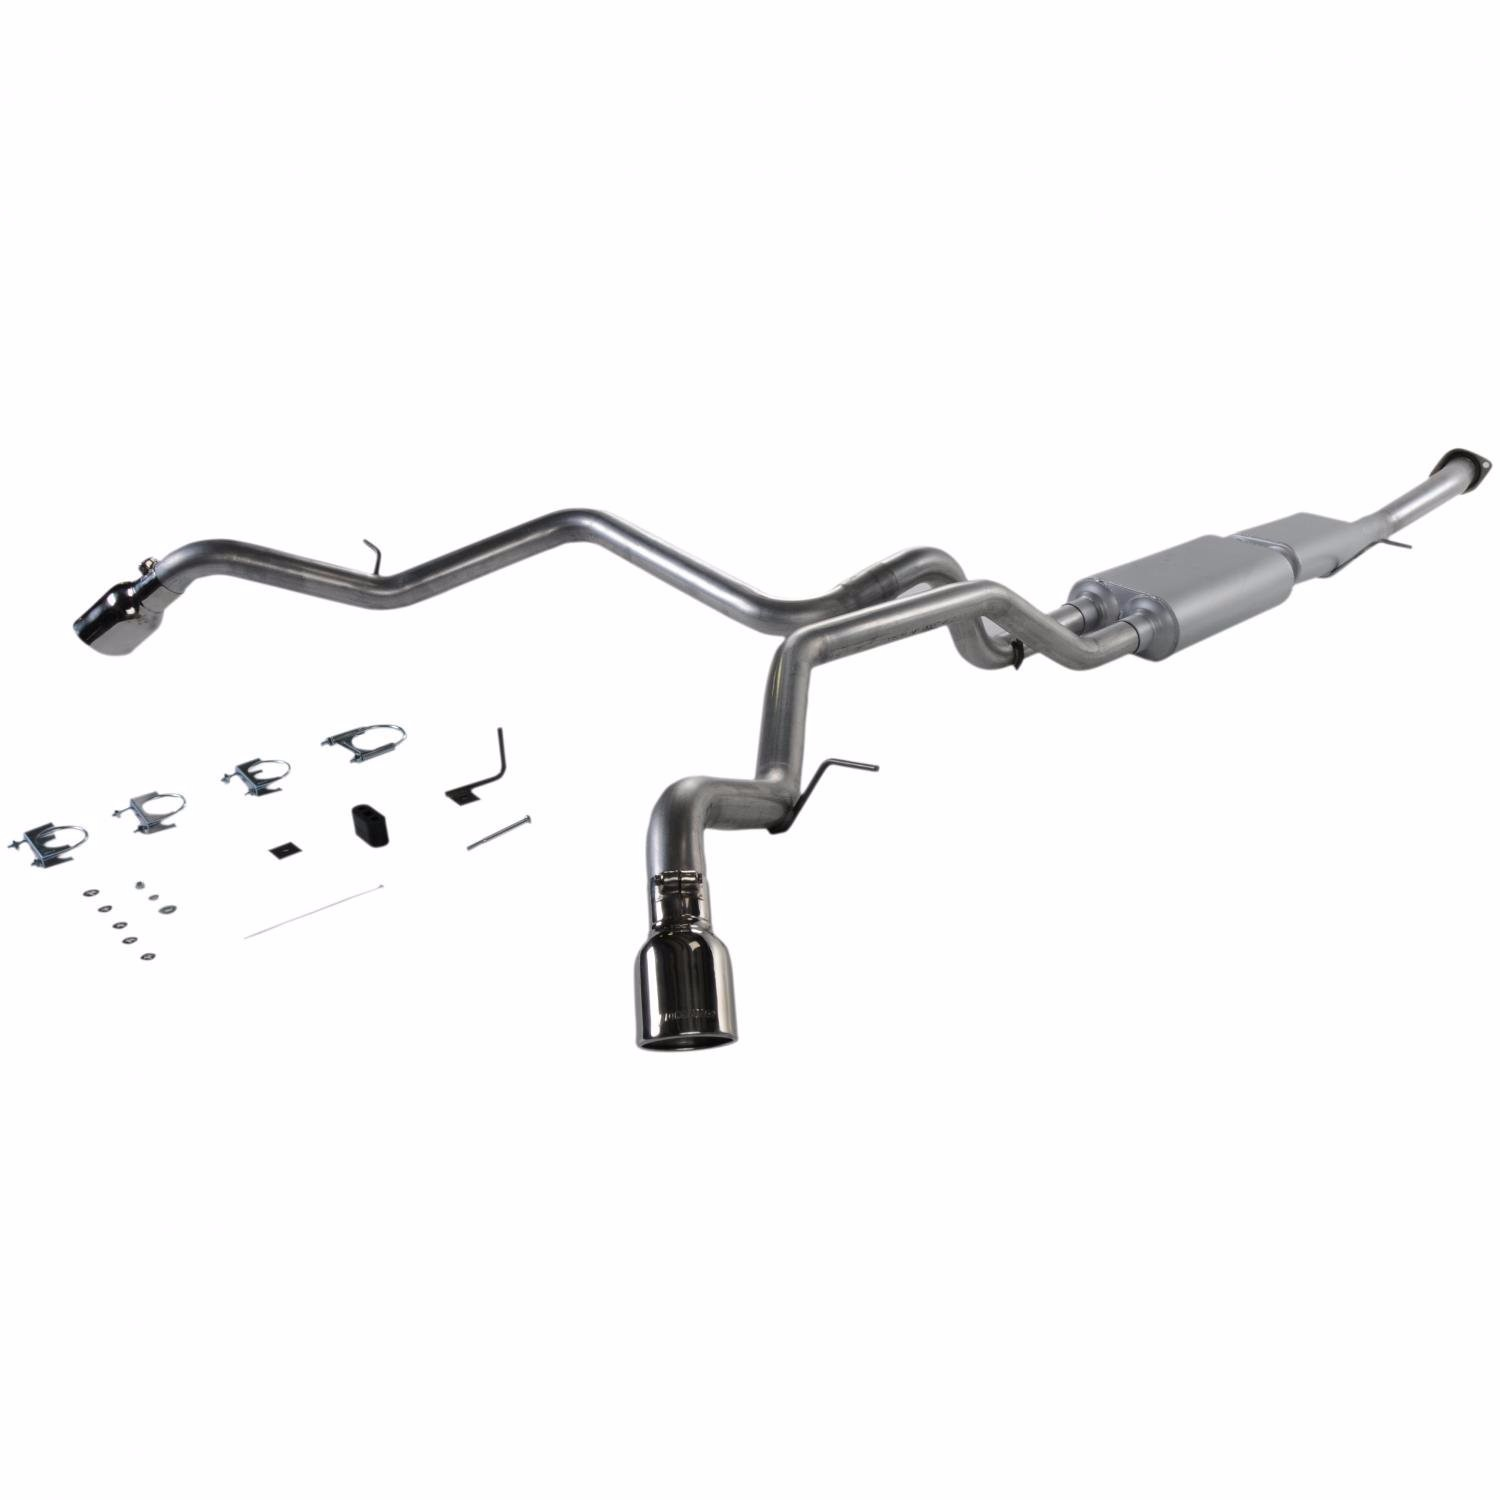 Flowmaster American Thunder Series Cat Back Exhaust